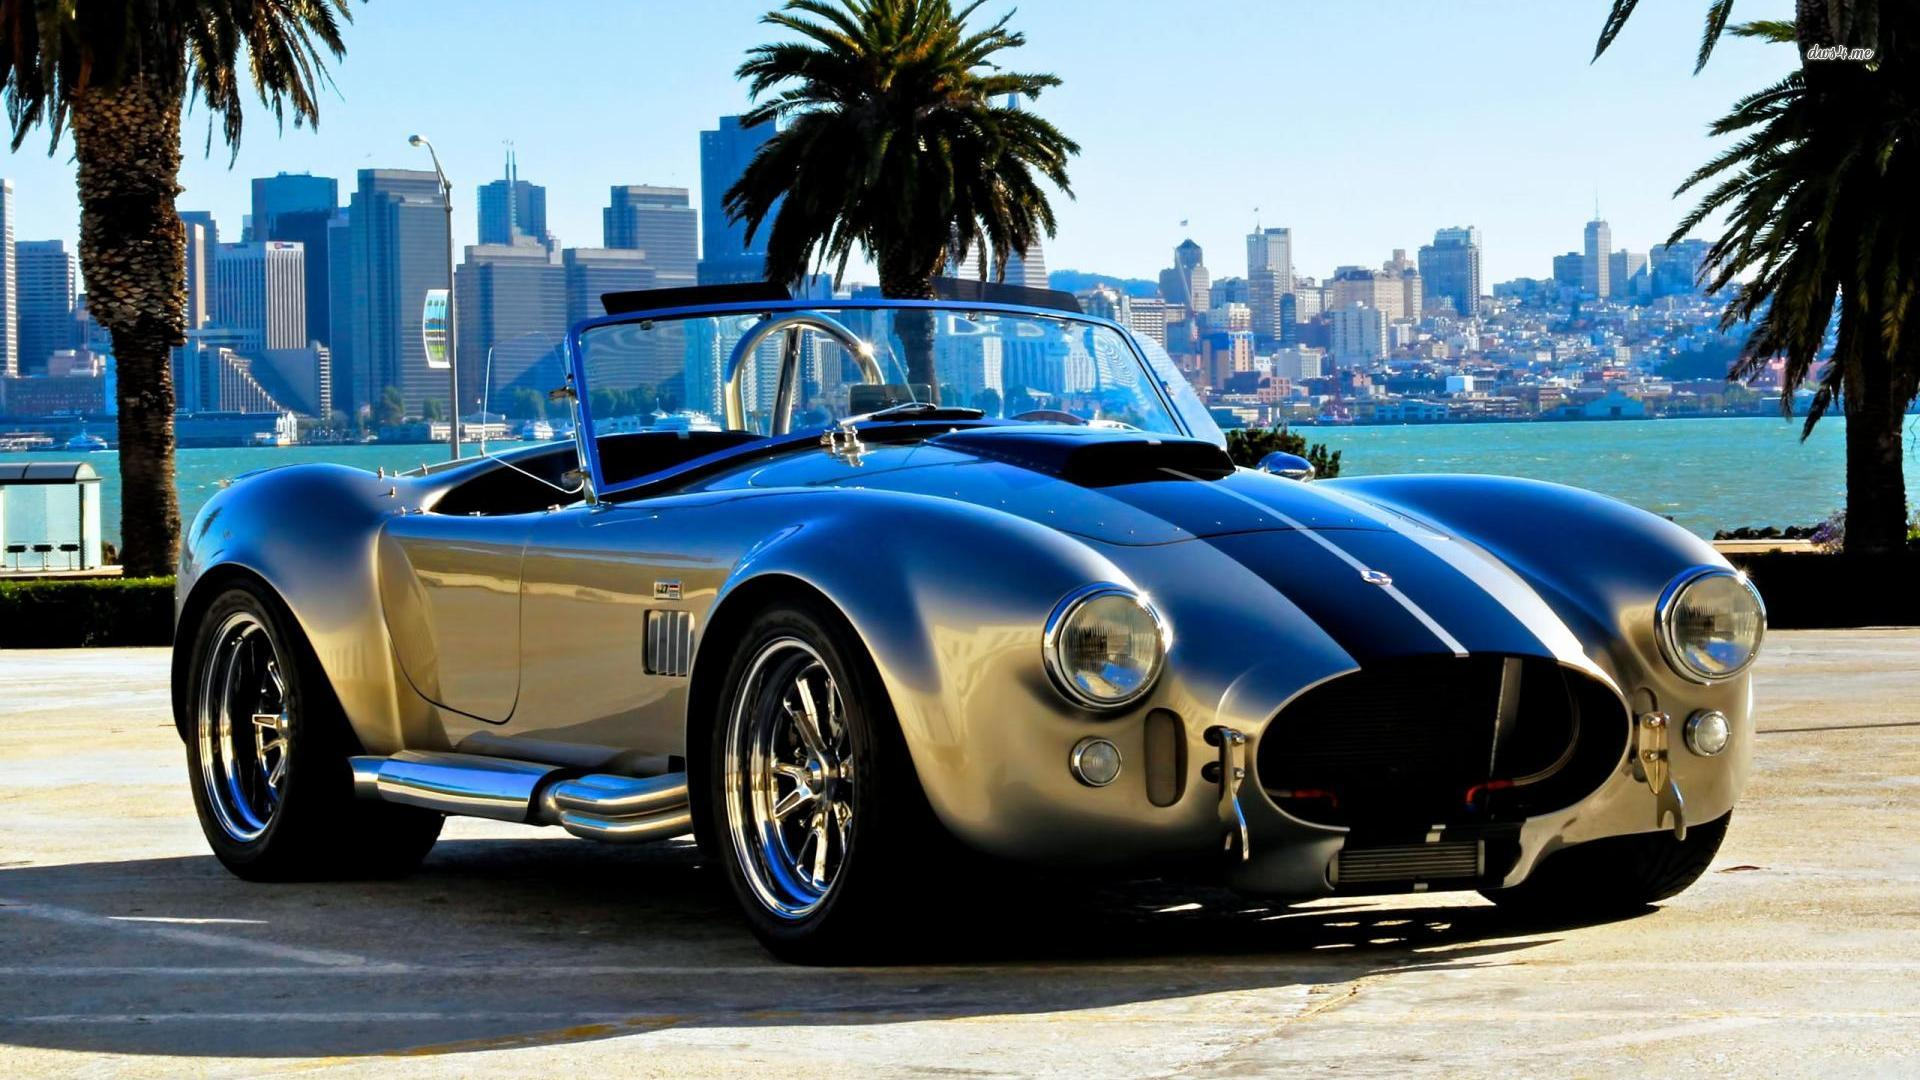 What is the best looking car of all time?